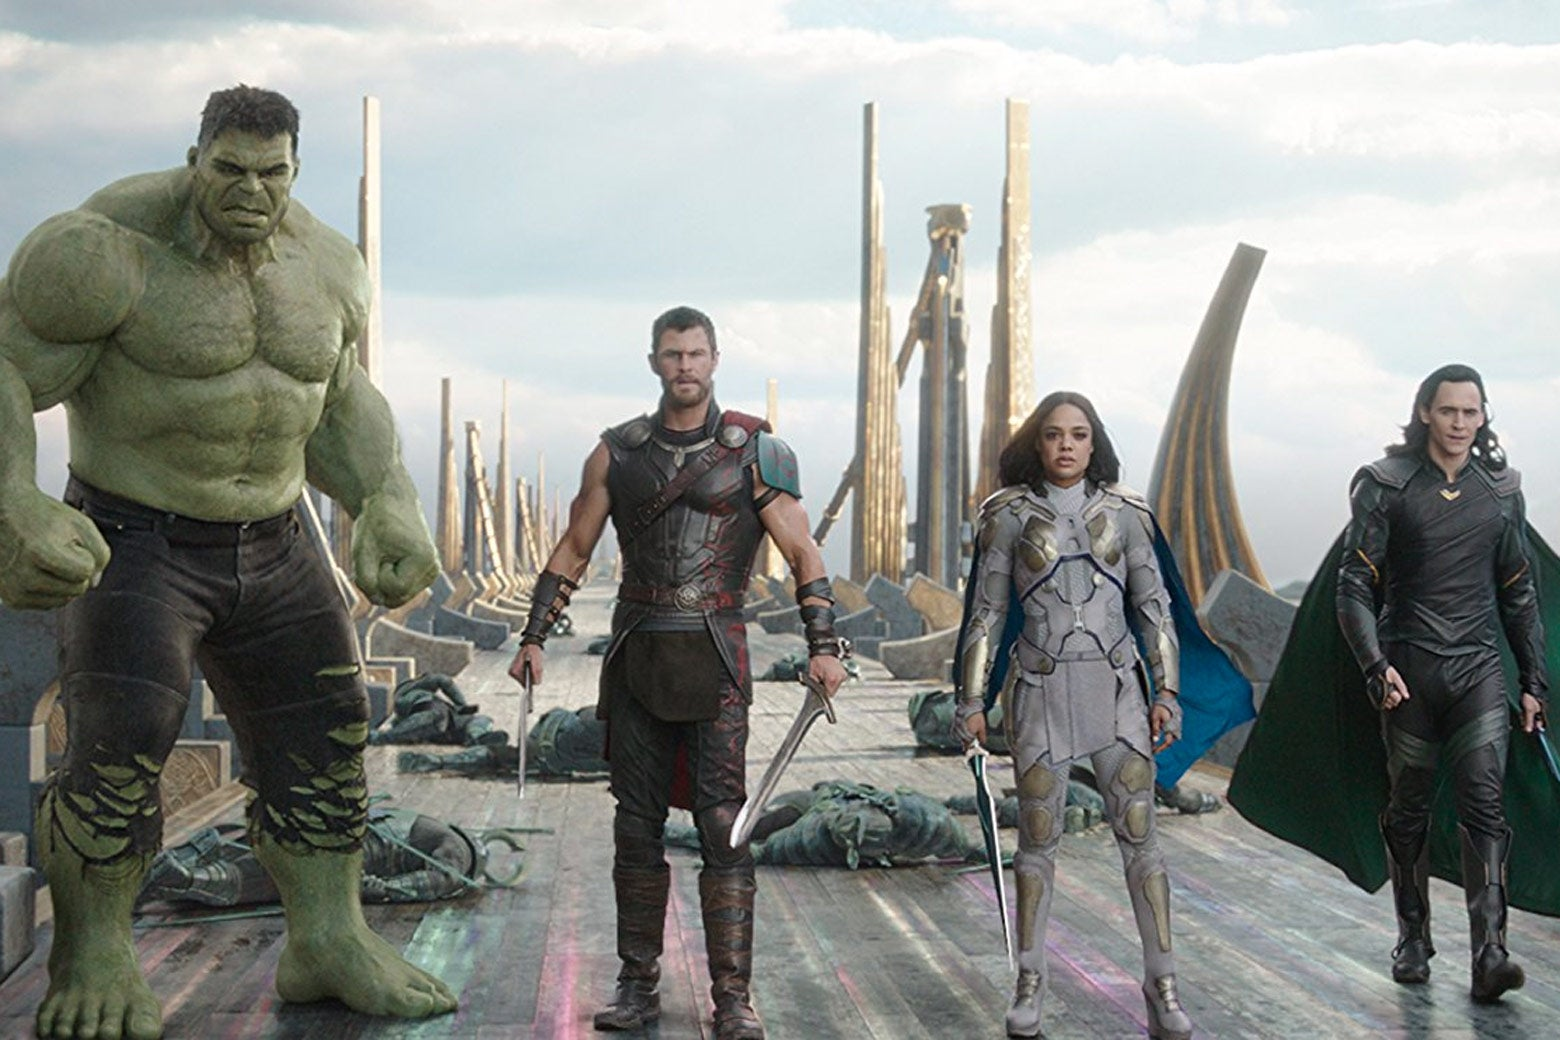 Mark Ruffalo, Chris Hemsworth, Tessa Thompson, and Tom Hiddleston in Thor: Ragnarok.